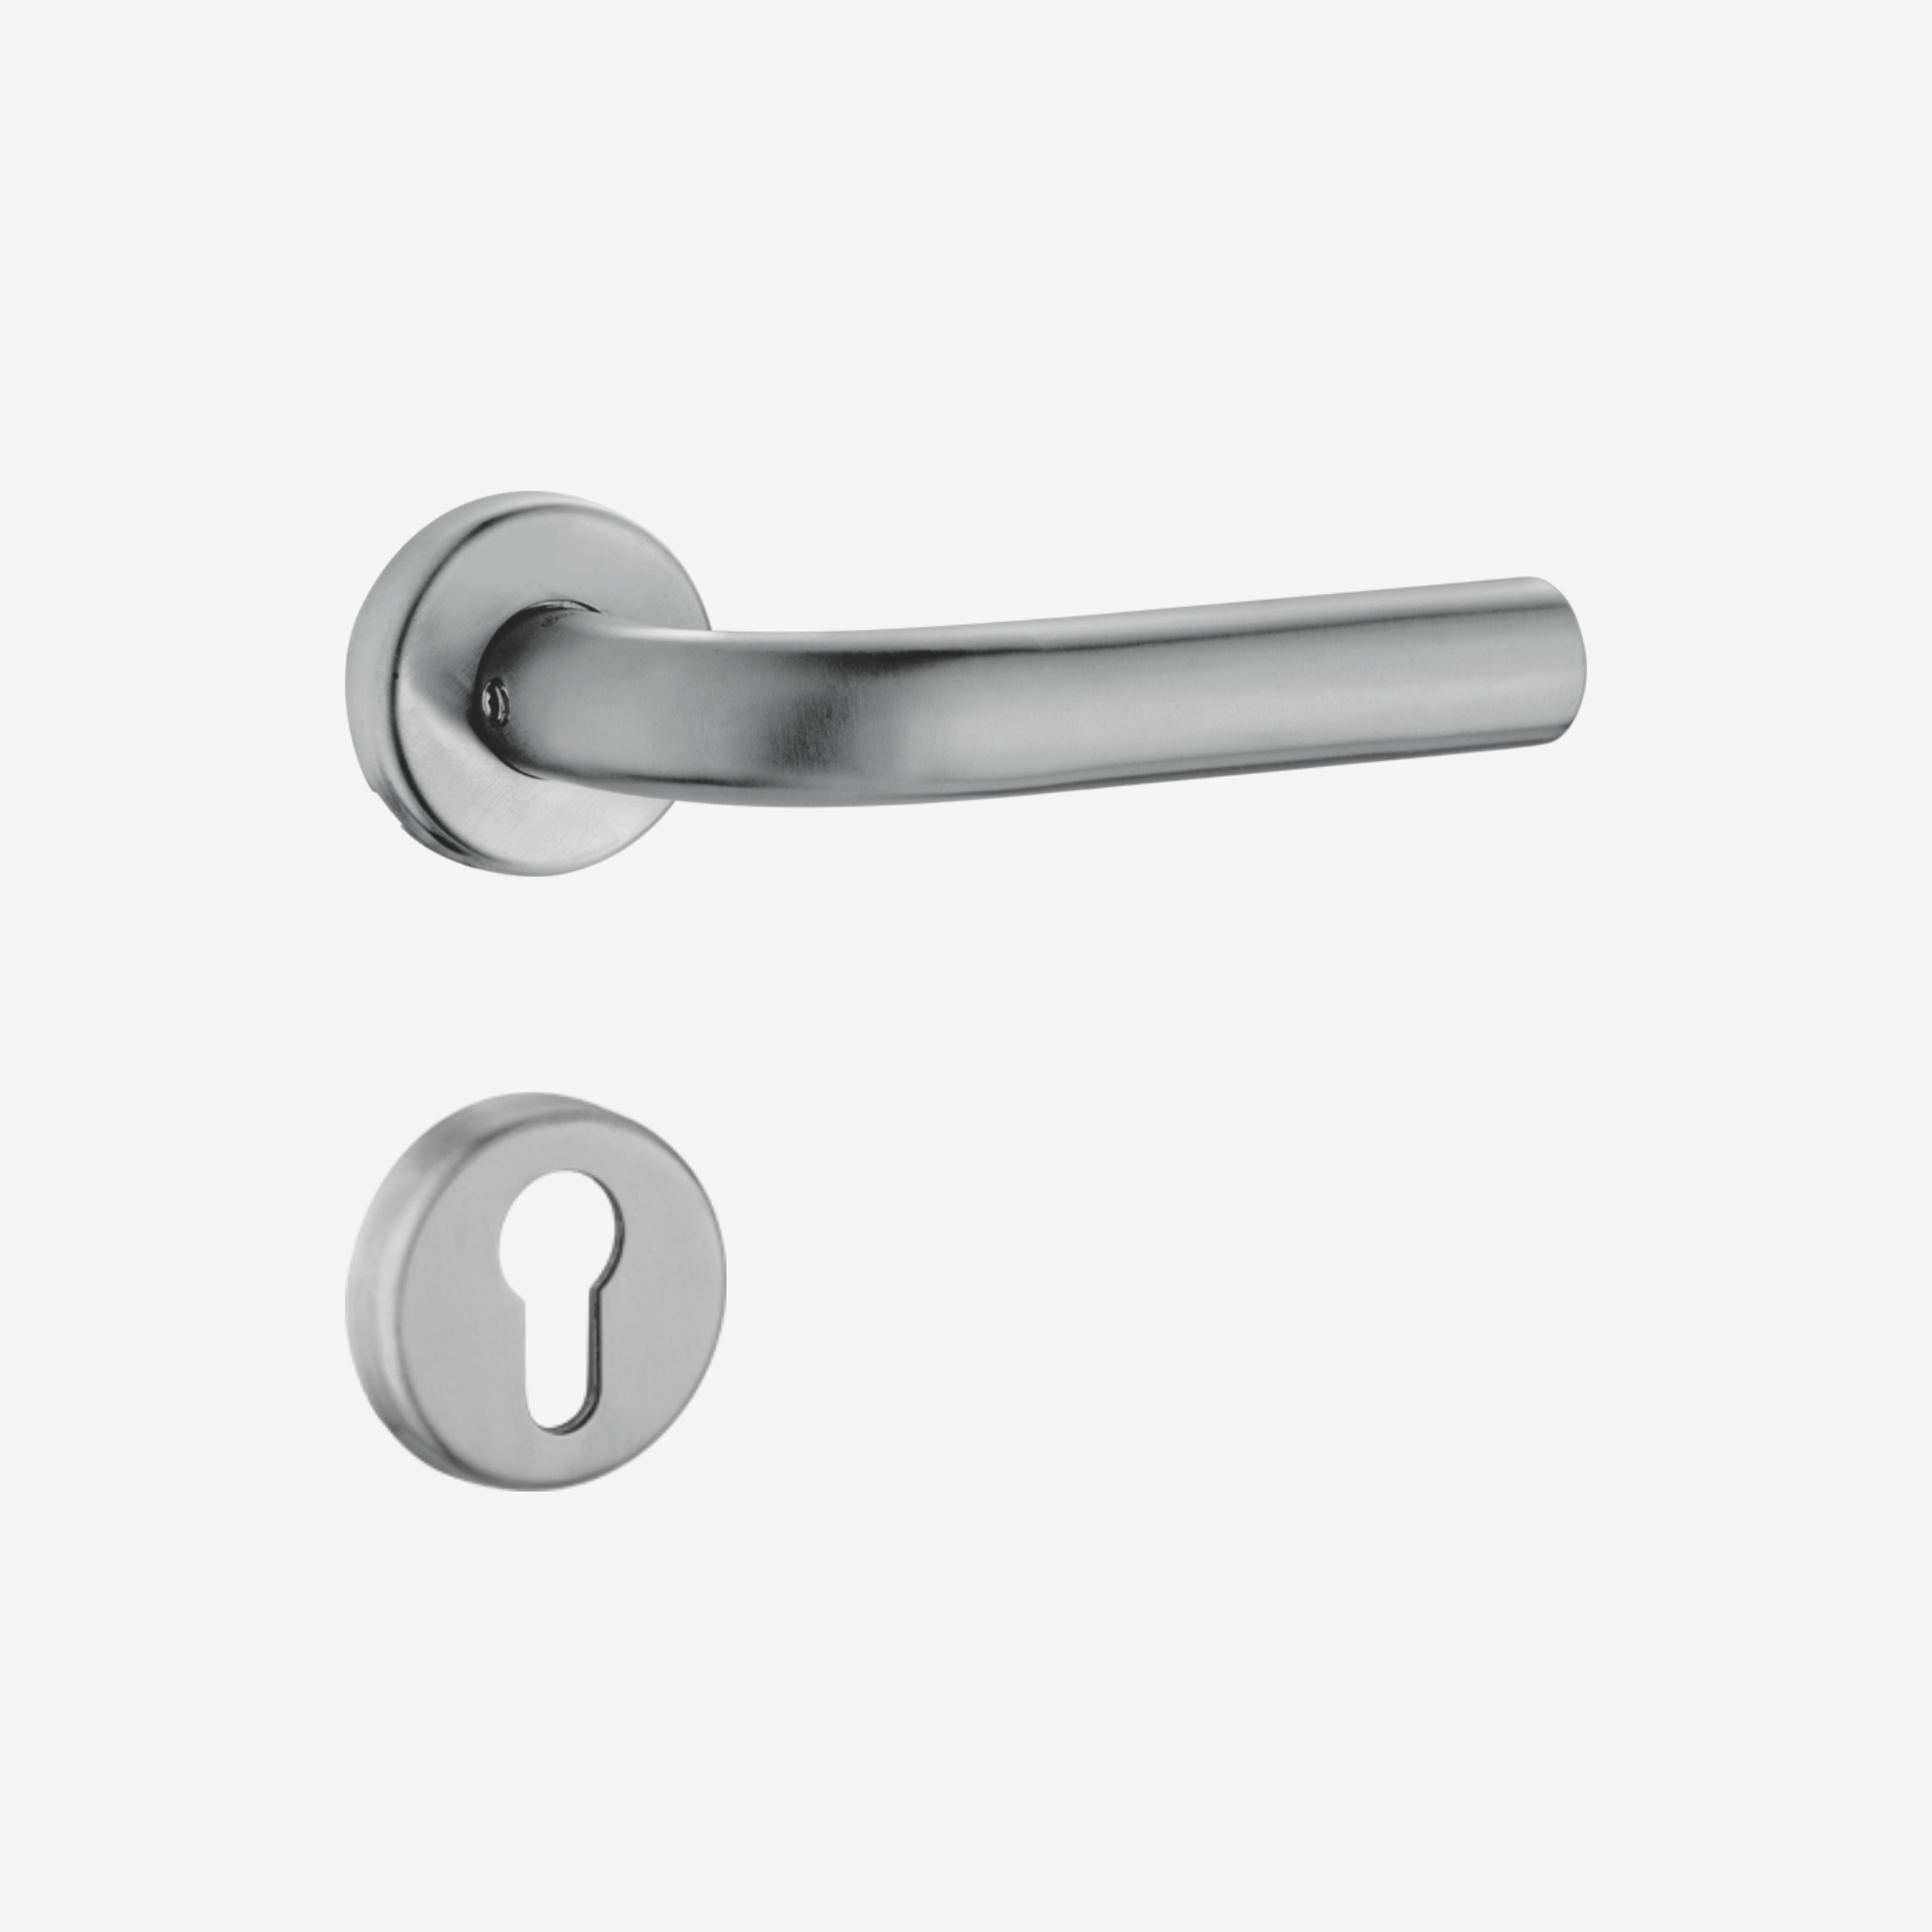 Dorset Lever handle for doors with lock _ cylinder - SL OR (SS)